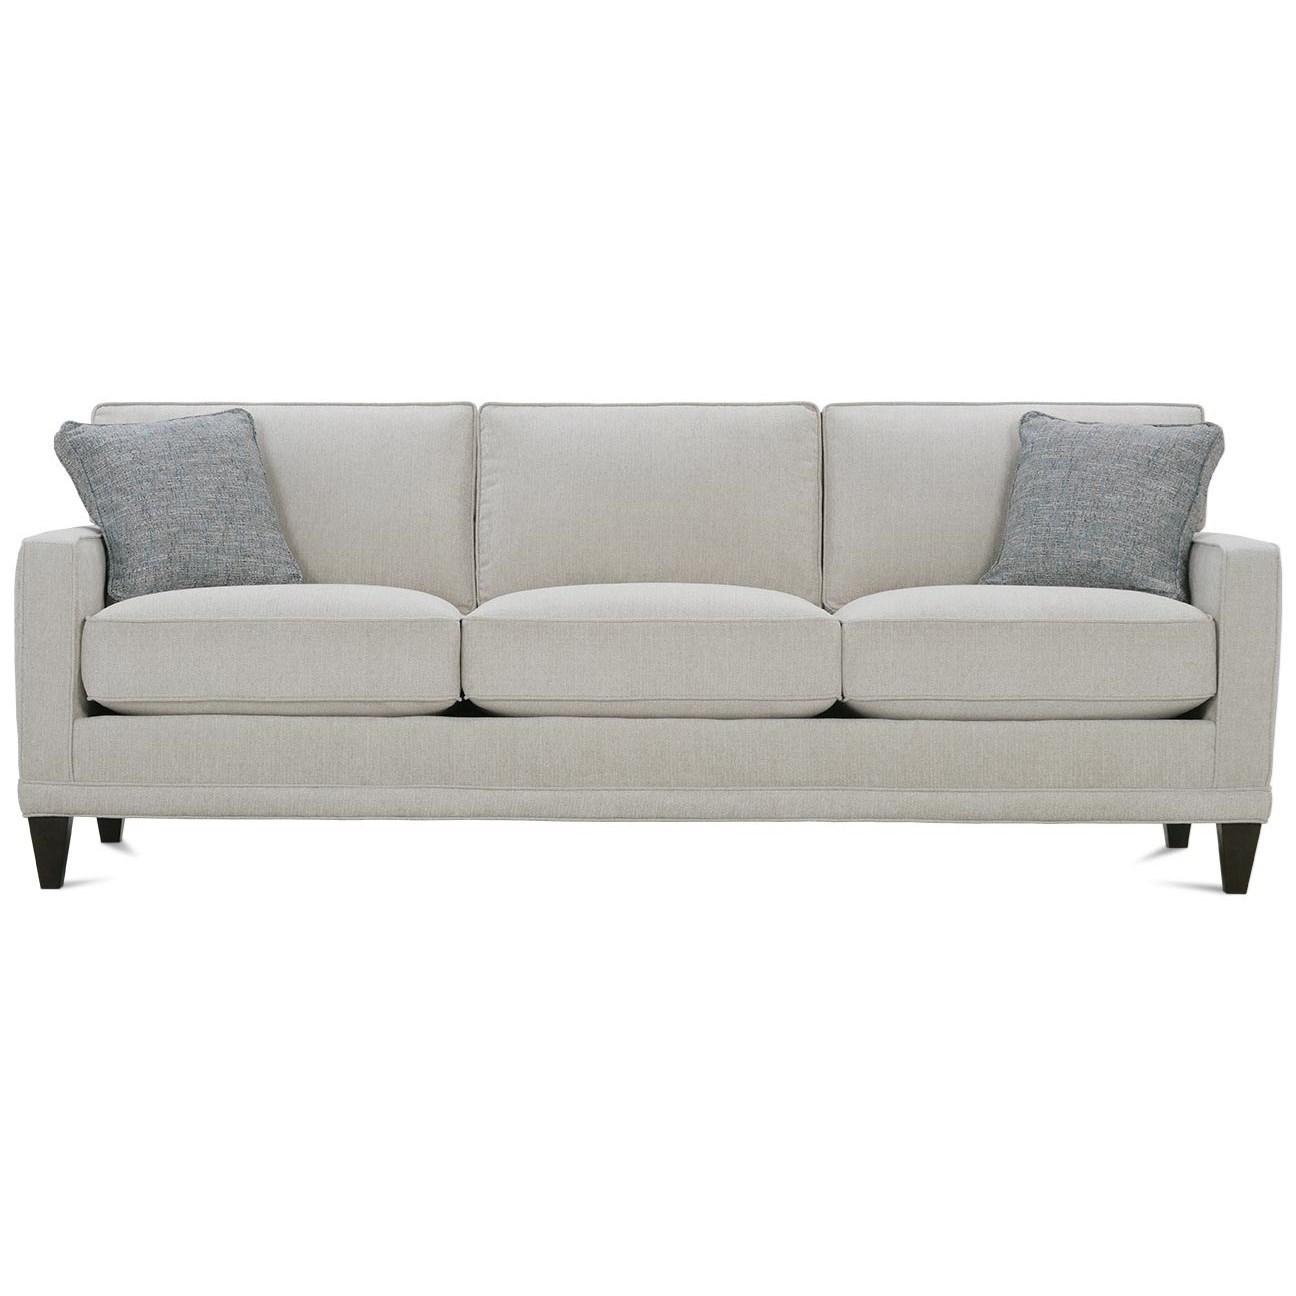 Townsend 3-Cushion Sofa by Rowe at Belfort Furniture